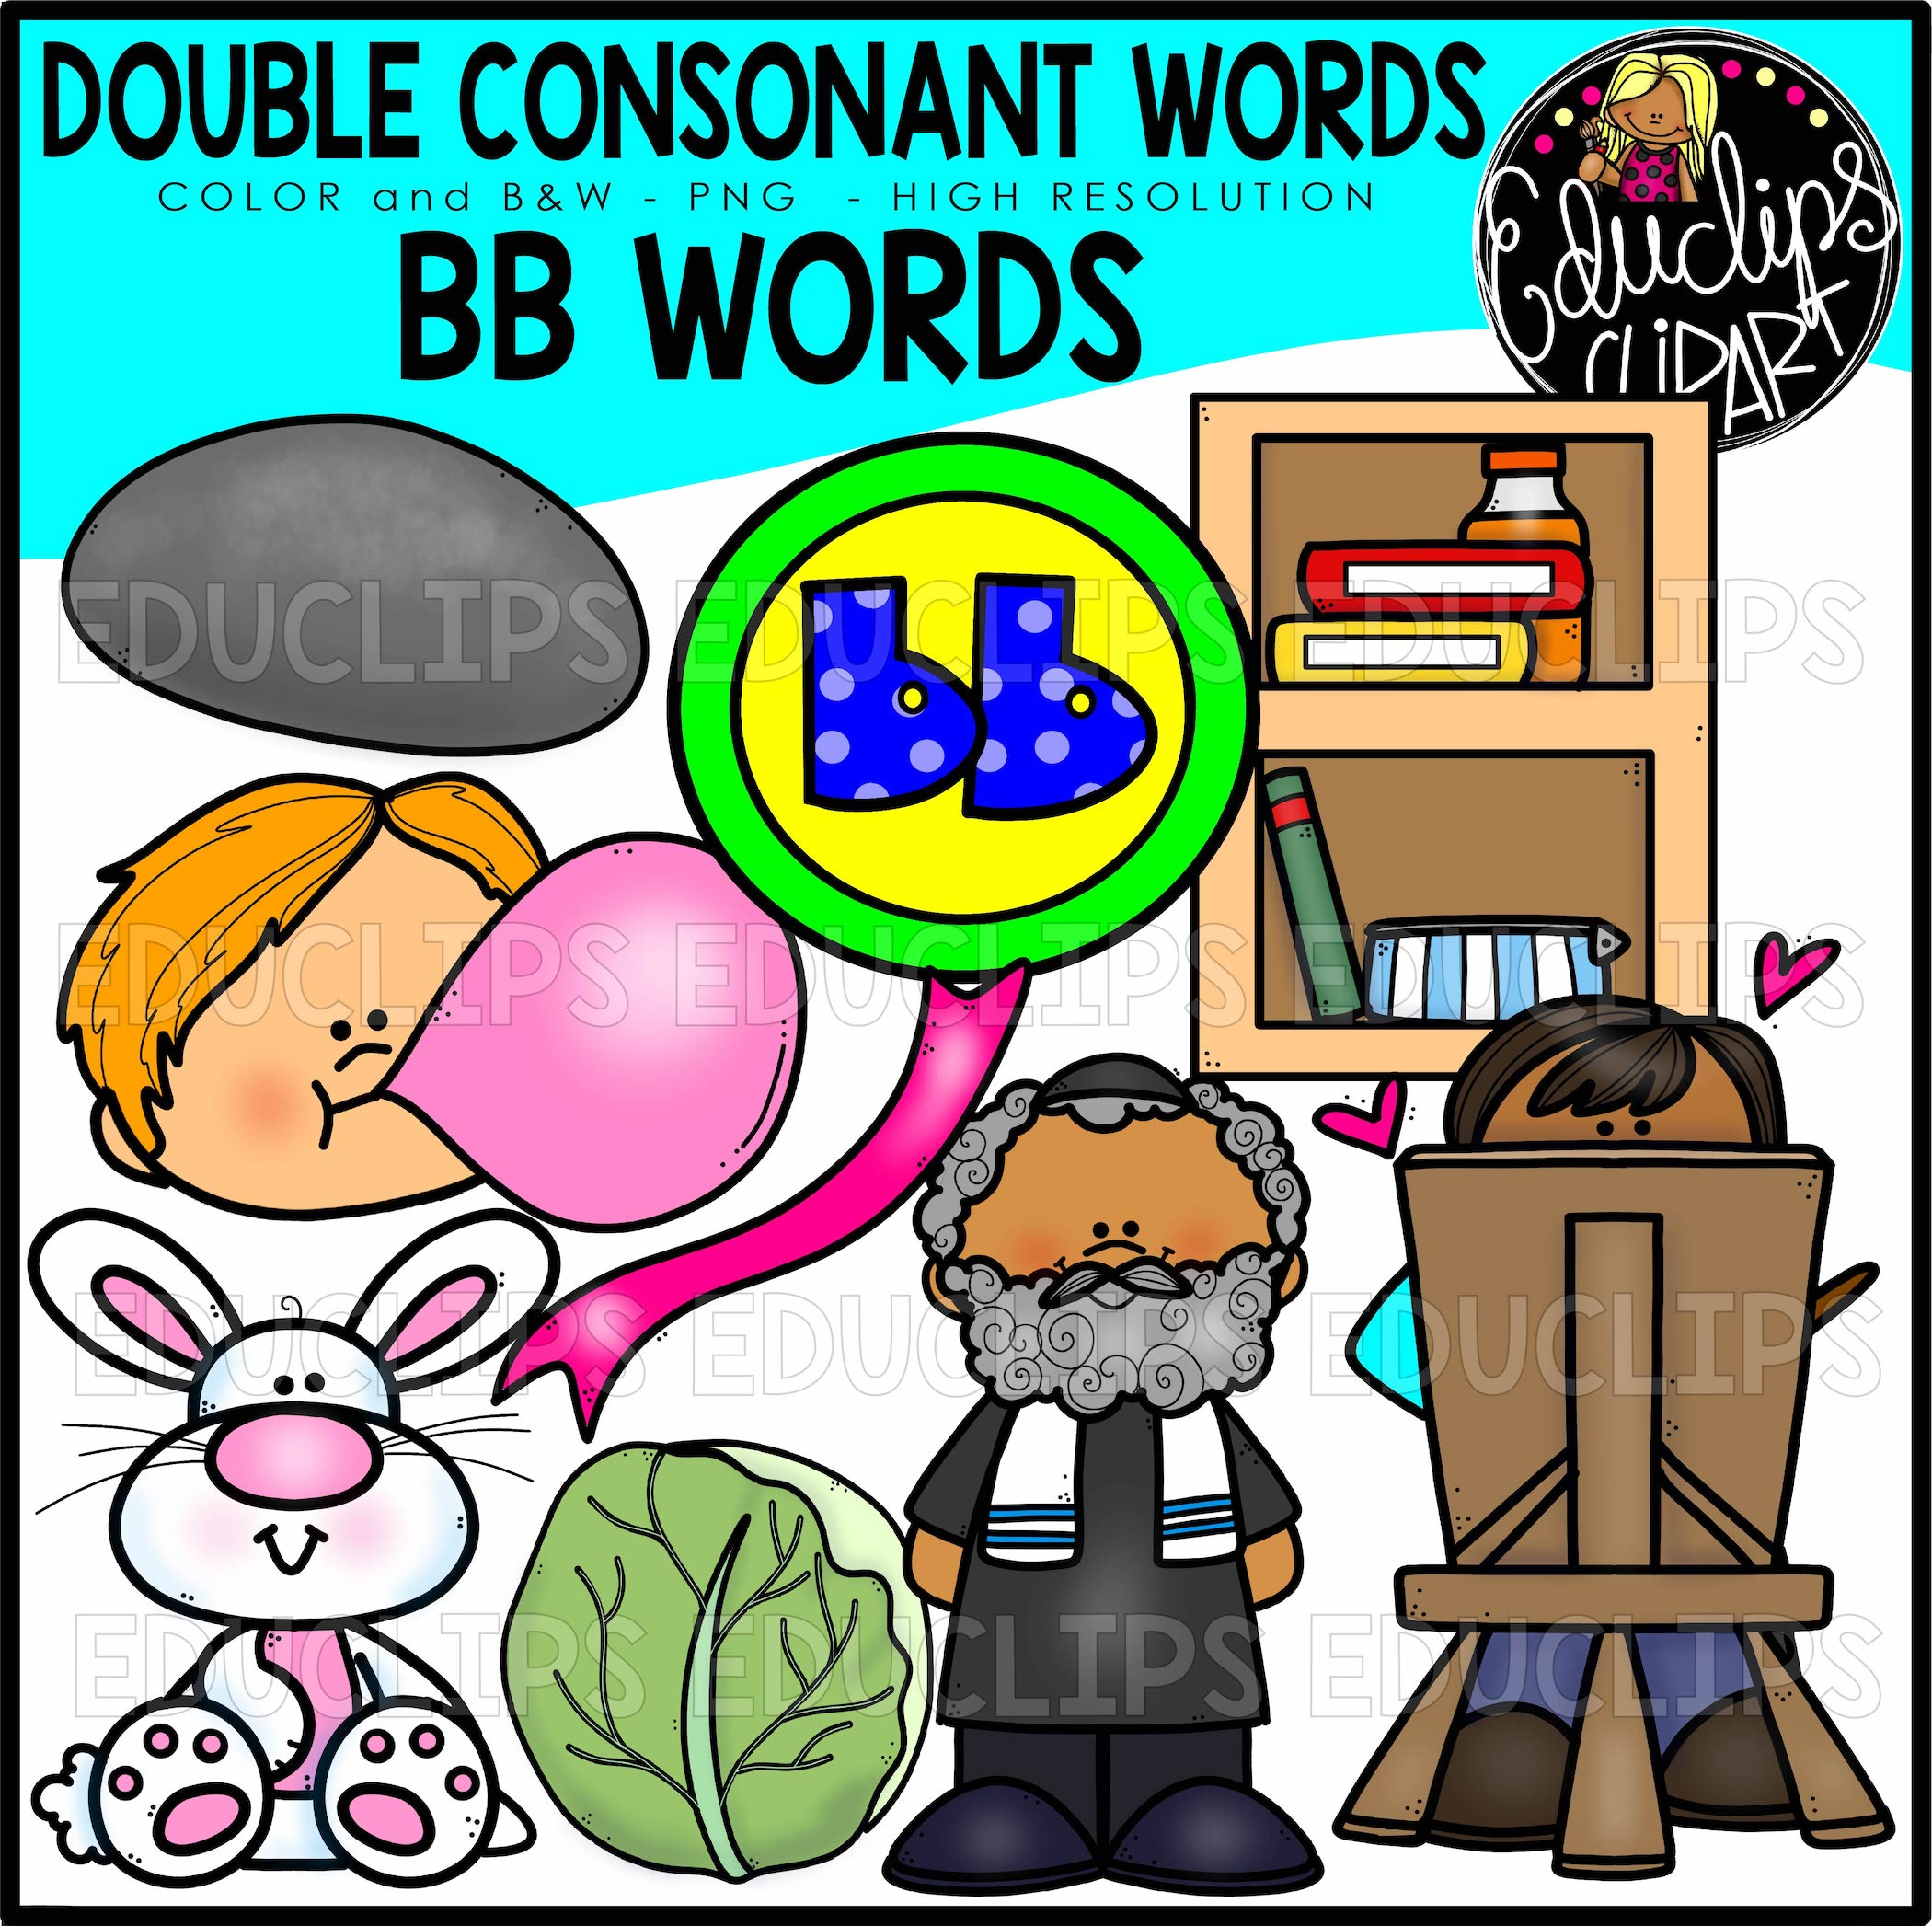 Double consonant bb words. Cabbage clipart educlips